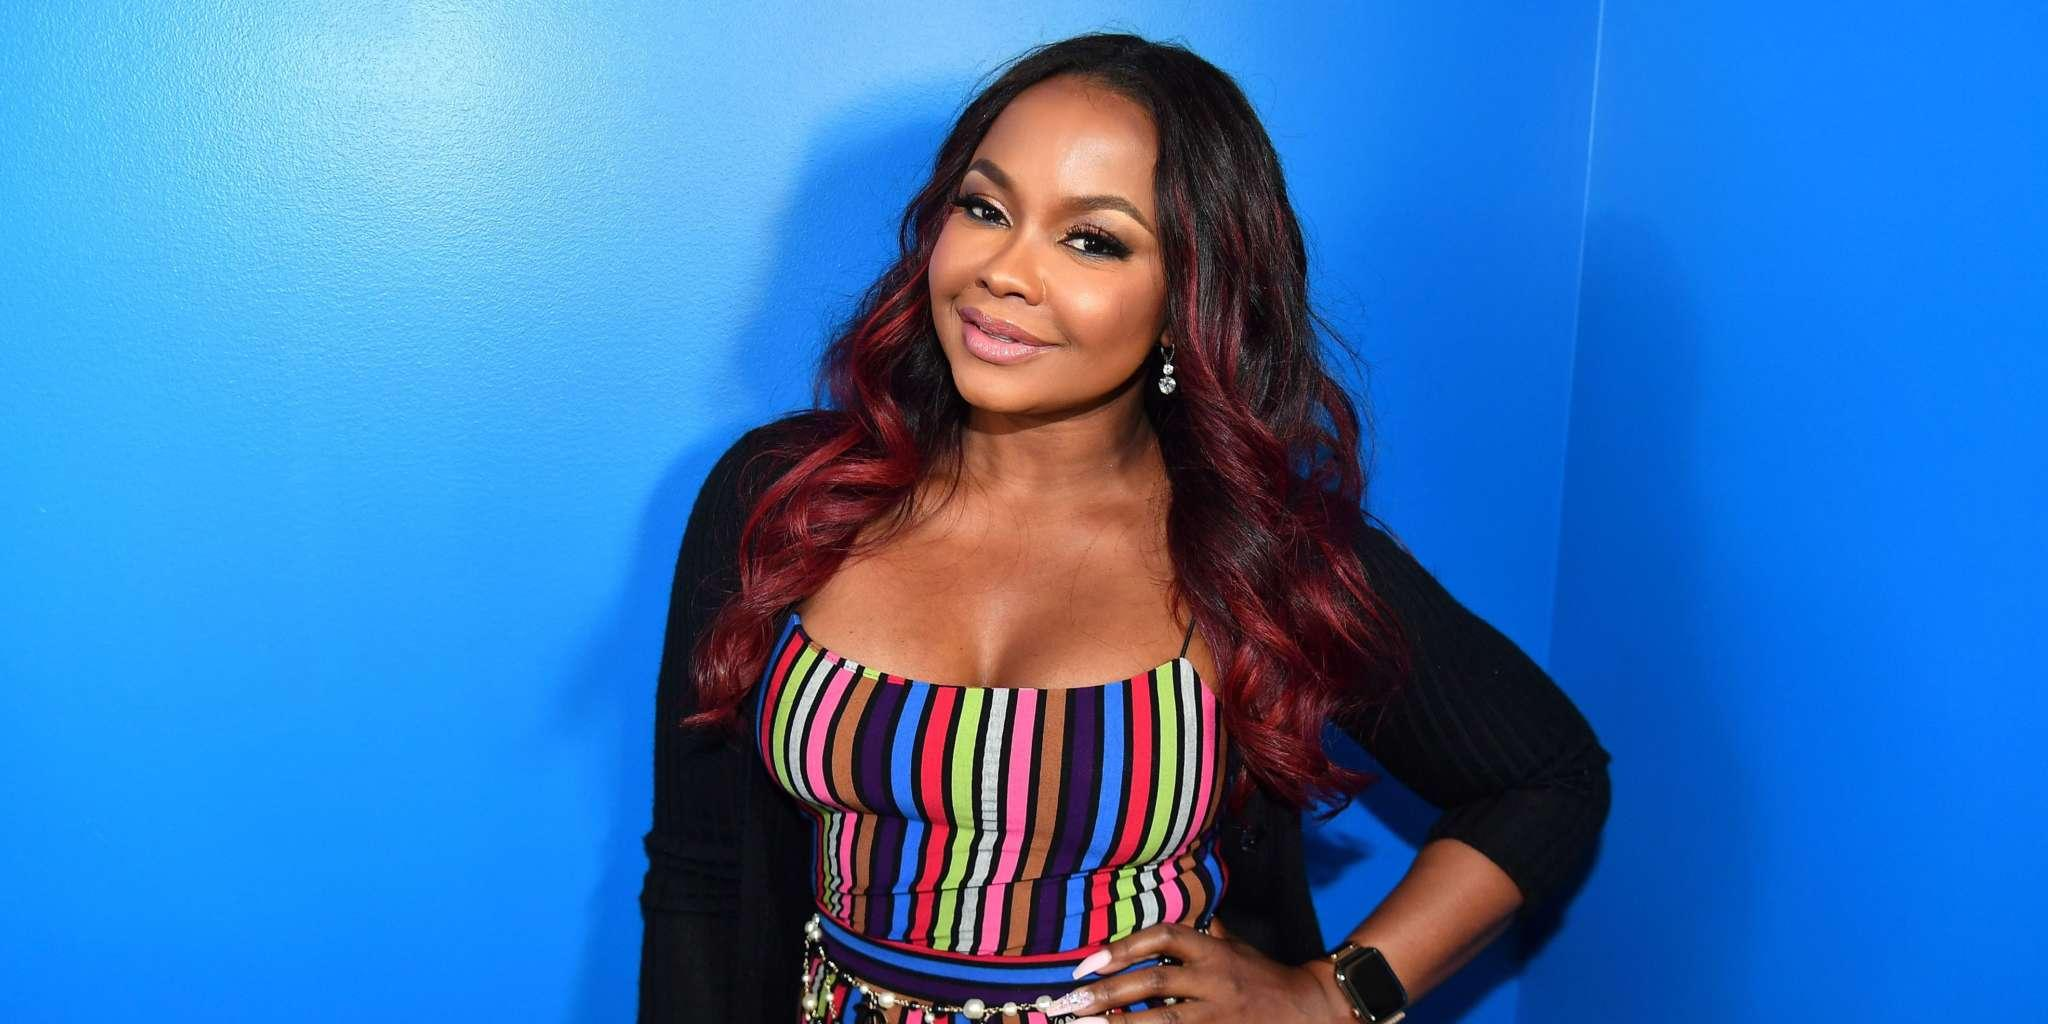 Phaedra Parks Celebrates Her Brother's Birthday - See The Gorgeous Photo She Shared To Mark The Event